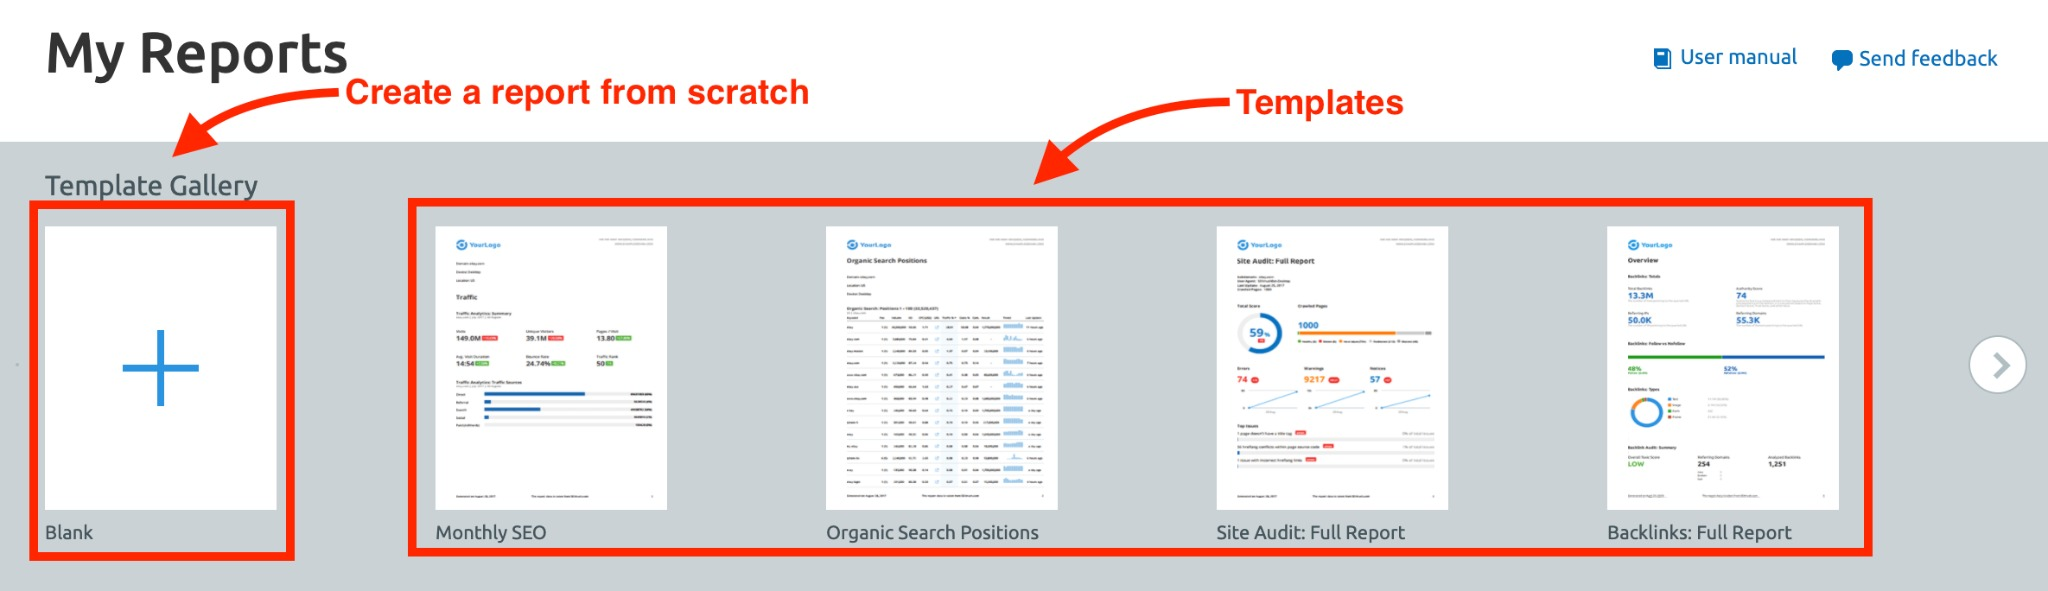 Report Automation with Semrush image 3